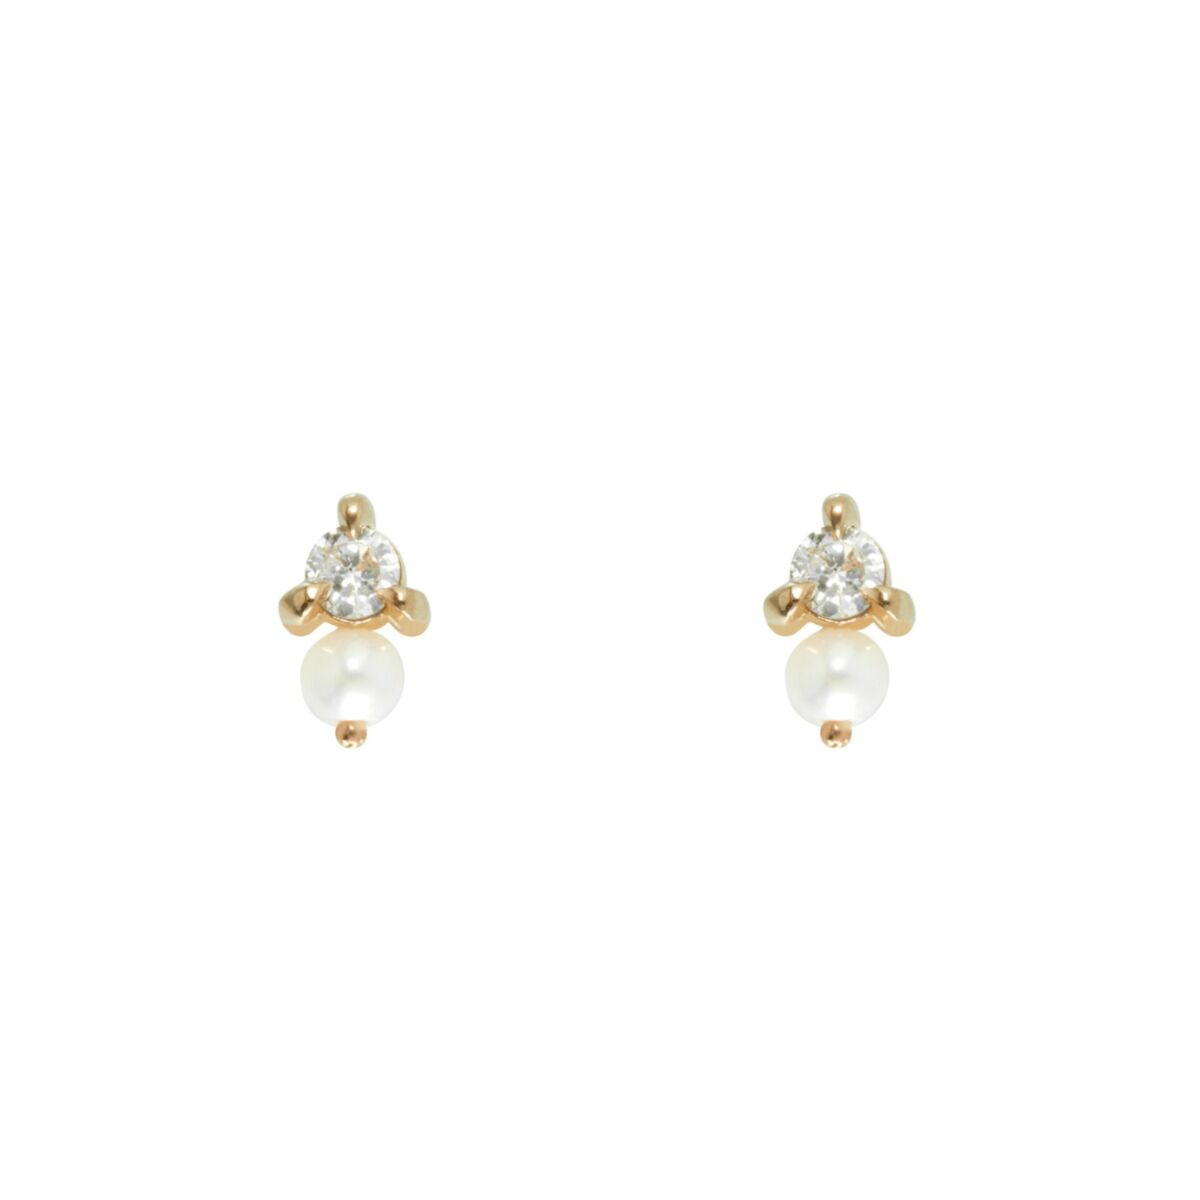 Dewdrop Stud, Yellow Gold (single) image